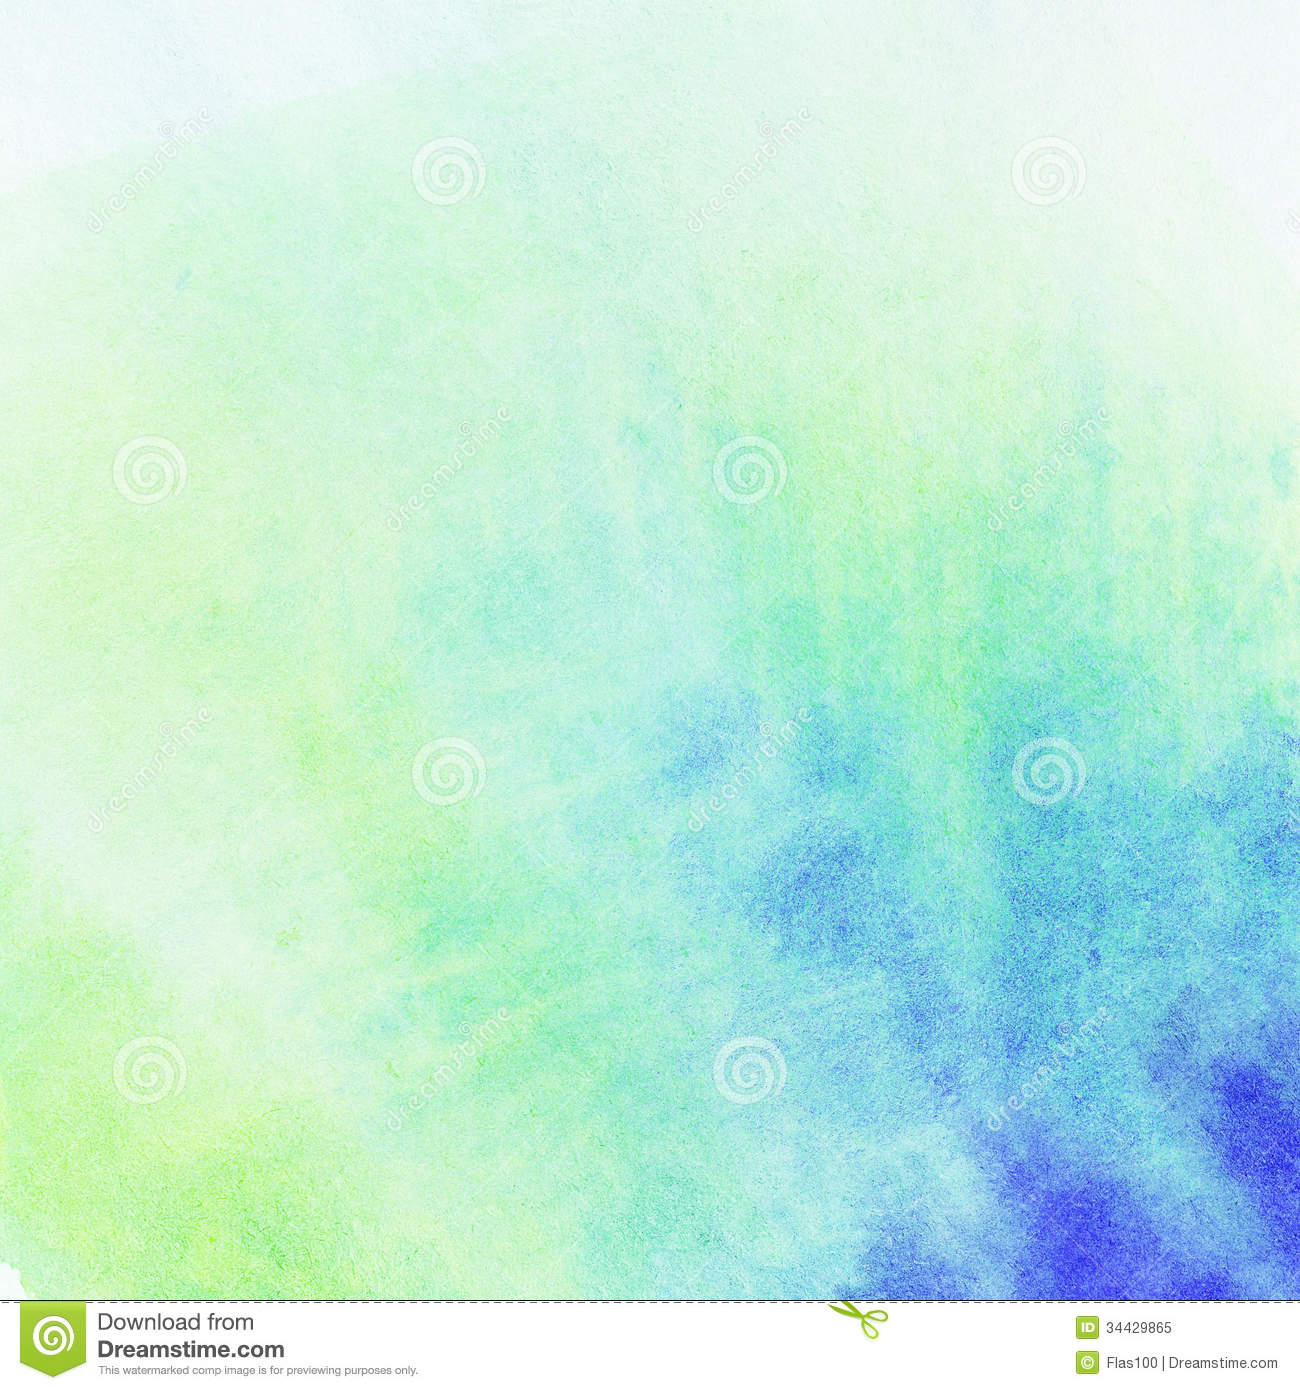 abstract light watercolor background royalty free stock. Black Bedroom Furniture Sets. Home Design Ideas